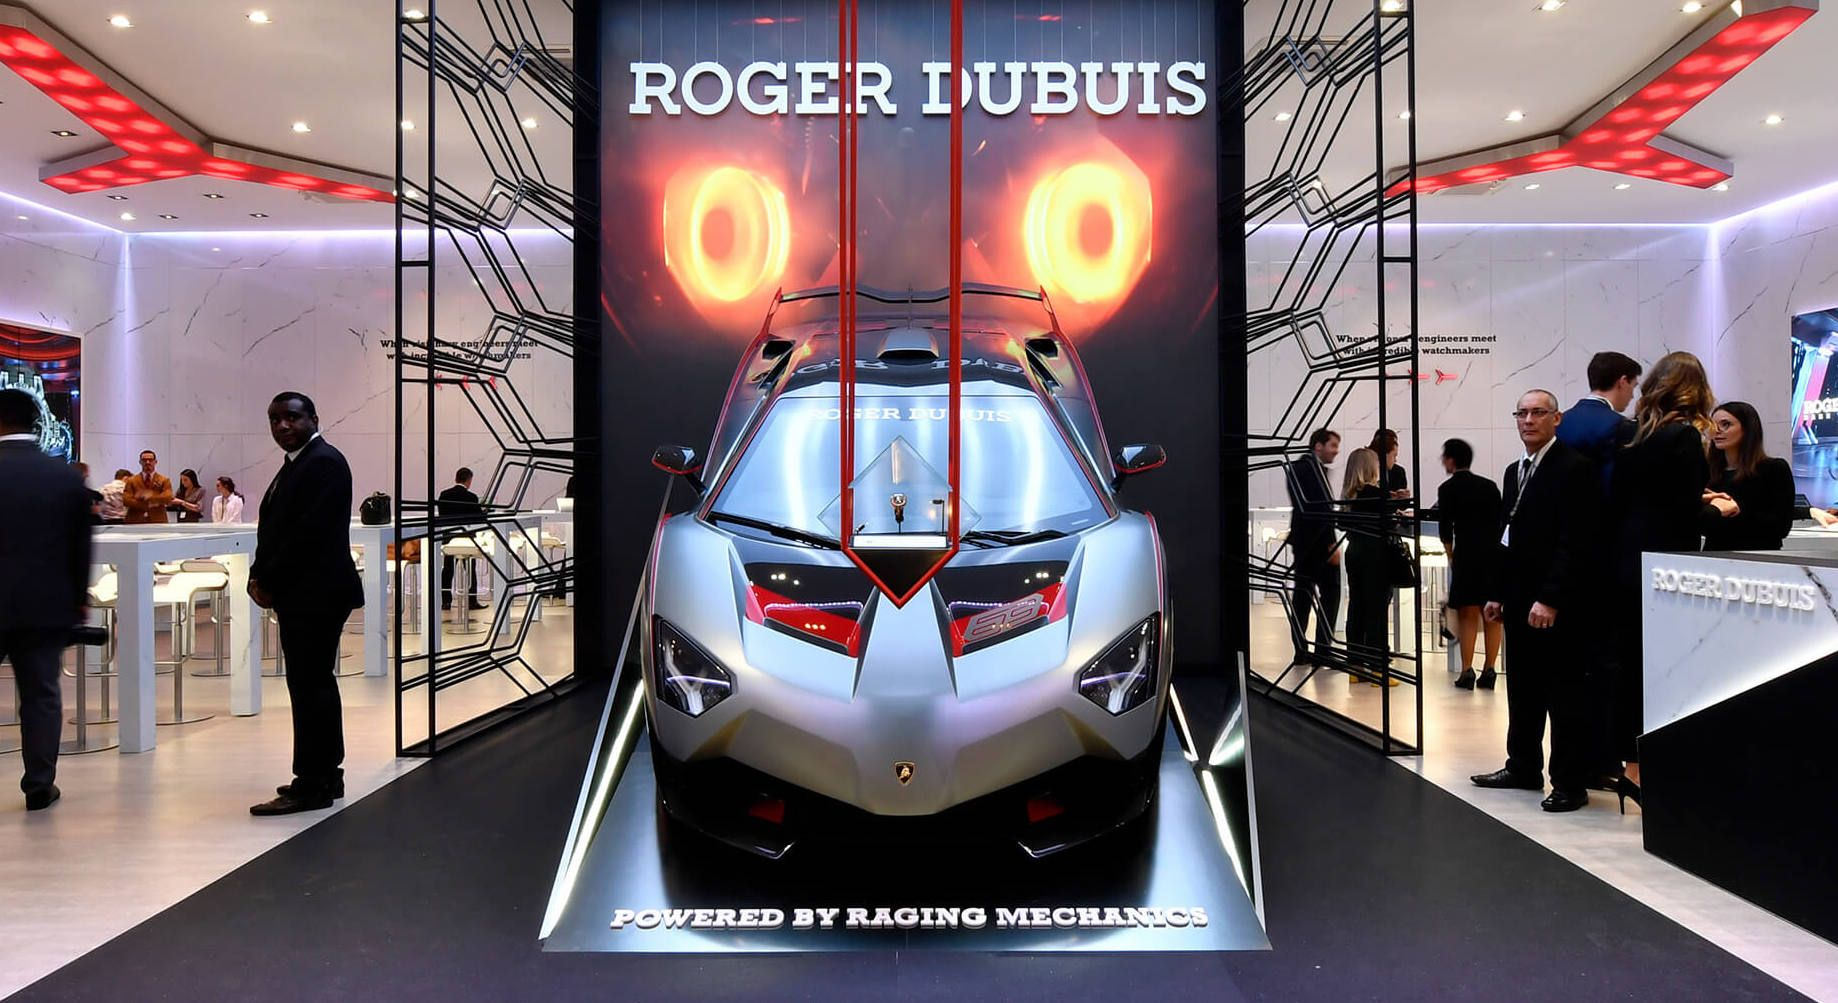 Roger Dubuis booth at SIHH 2019